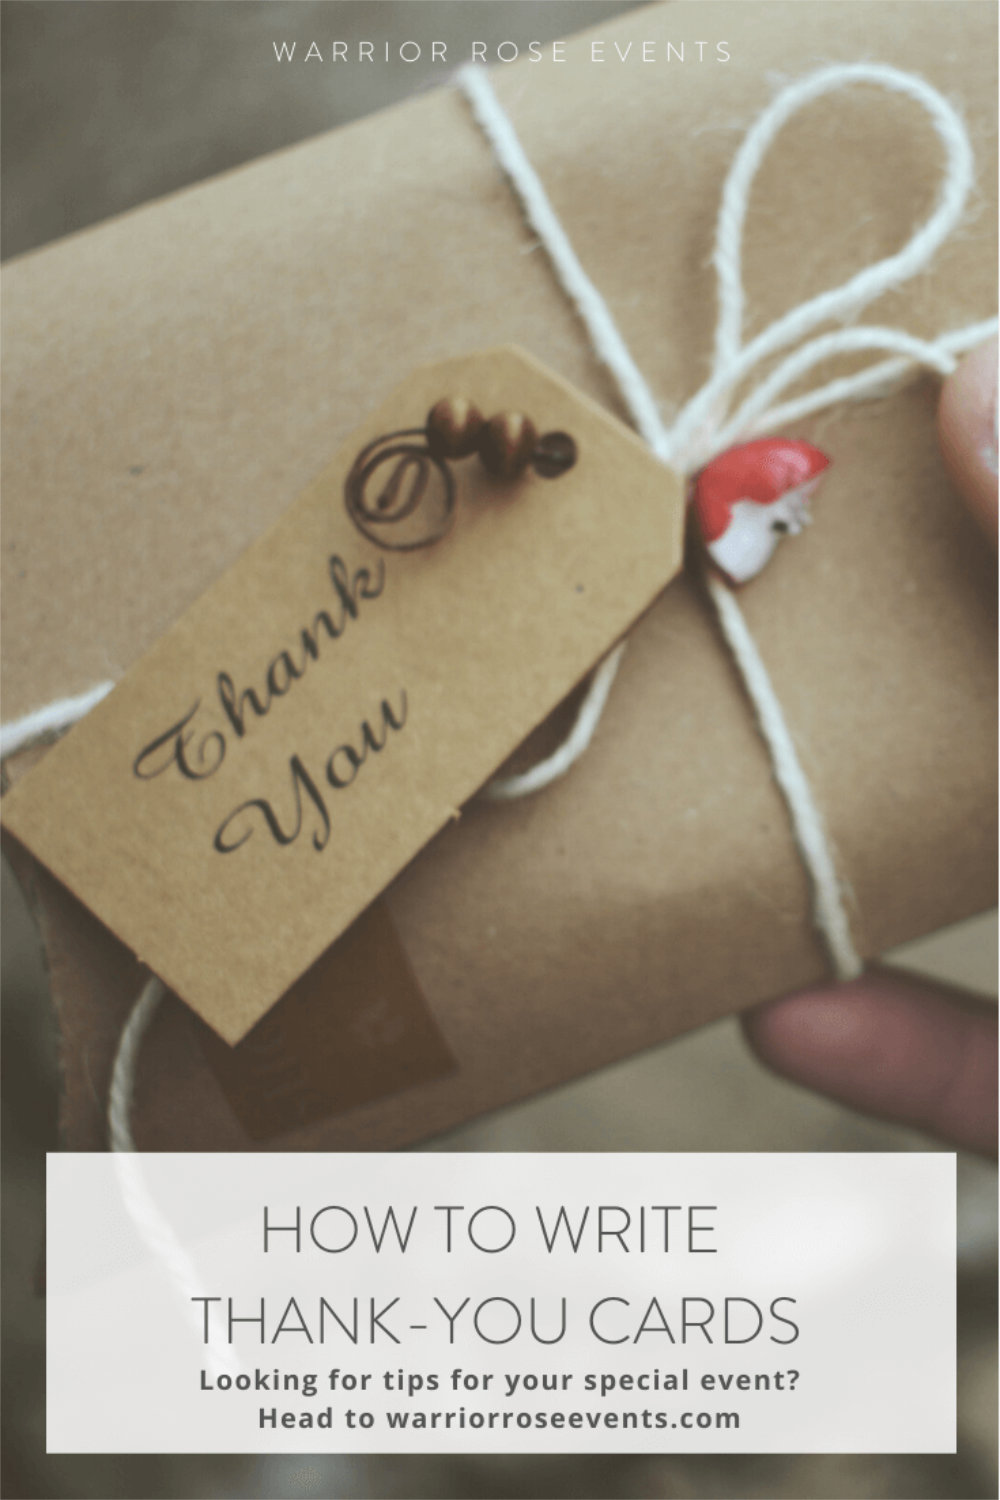 How to Write Thank-You Cards Best Wedding Planning Tips and Tricks 6